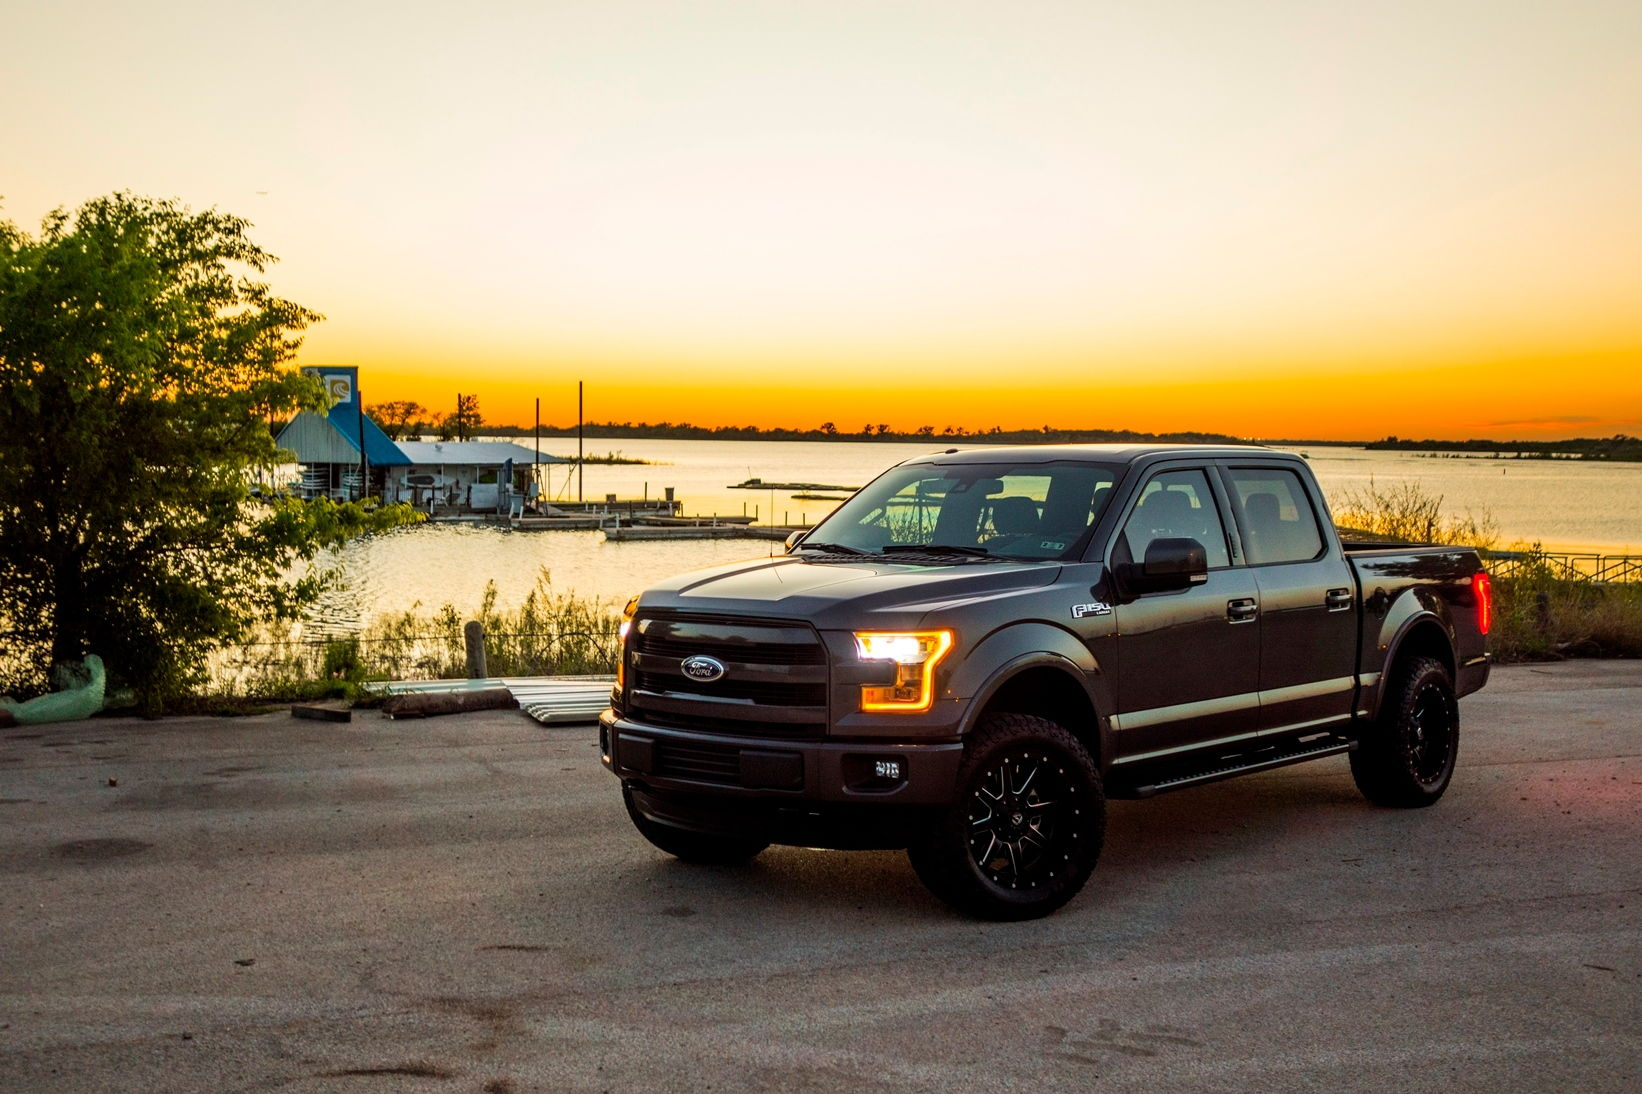 2015 f150 strictly pics thread page 241 ford f150 forum community of ford truck fans. Black Bedroom Furniture Sets. Home Design Ideas